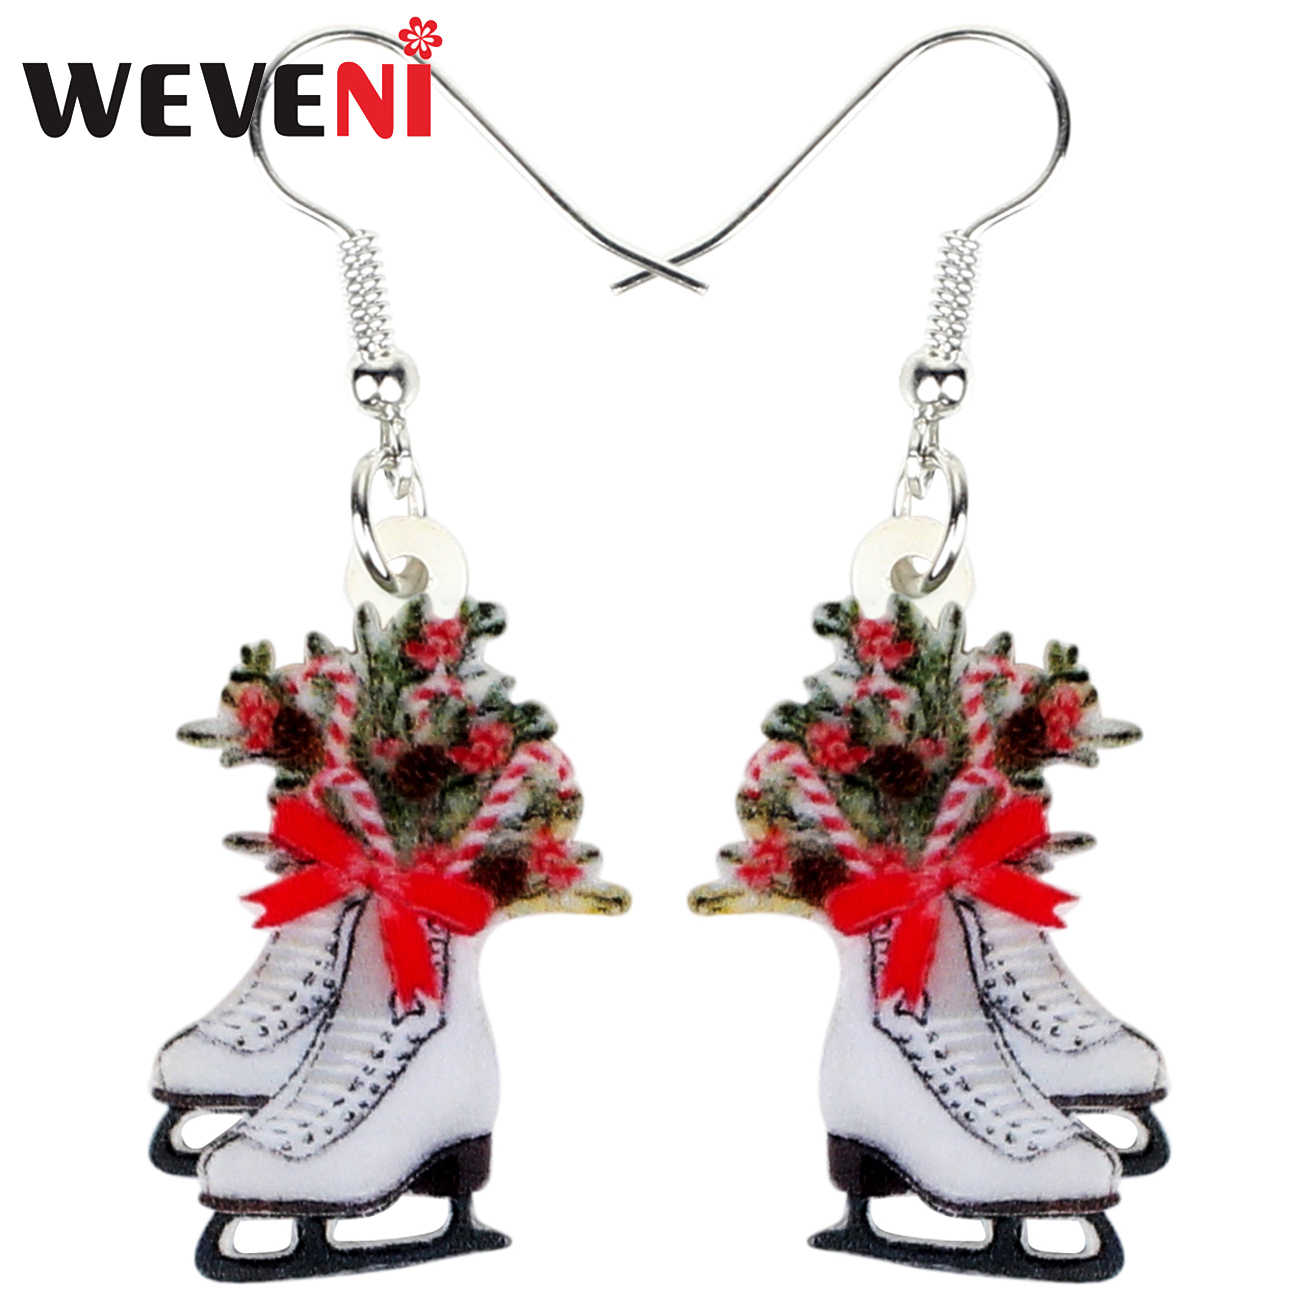 WEVENI Statement Acrylic Christmas Skates Gift Earrings Drop Dangle New Year Navidad Decoration Jewelry For Women Girls Charms